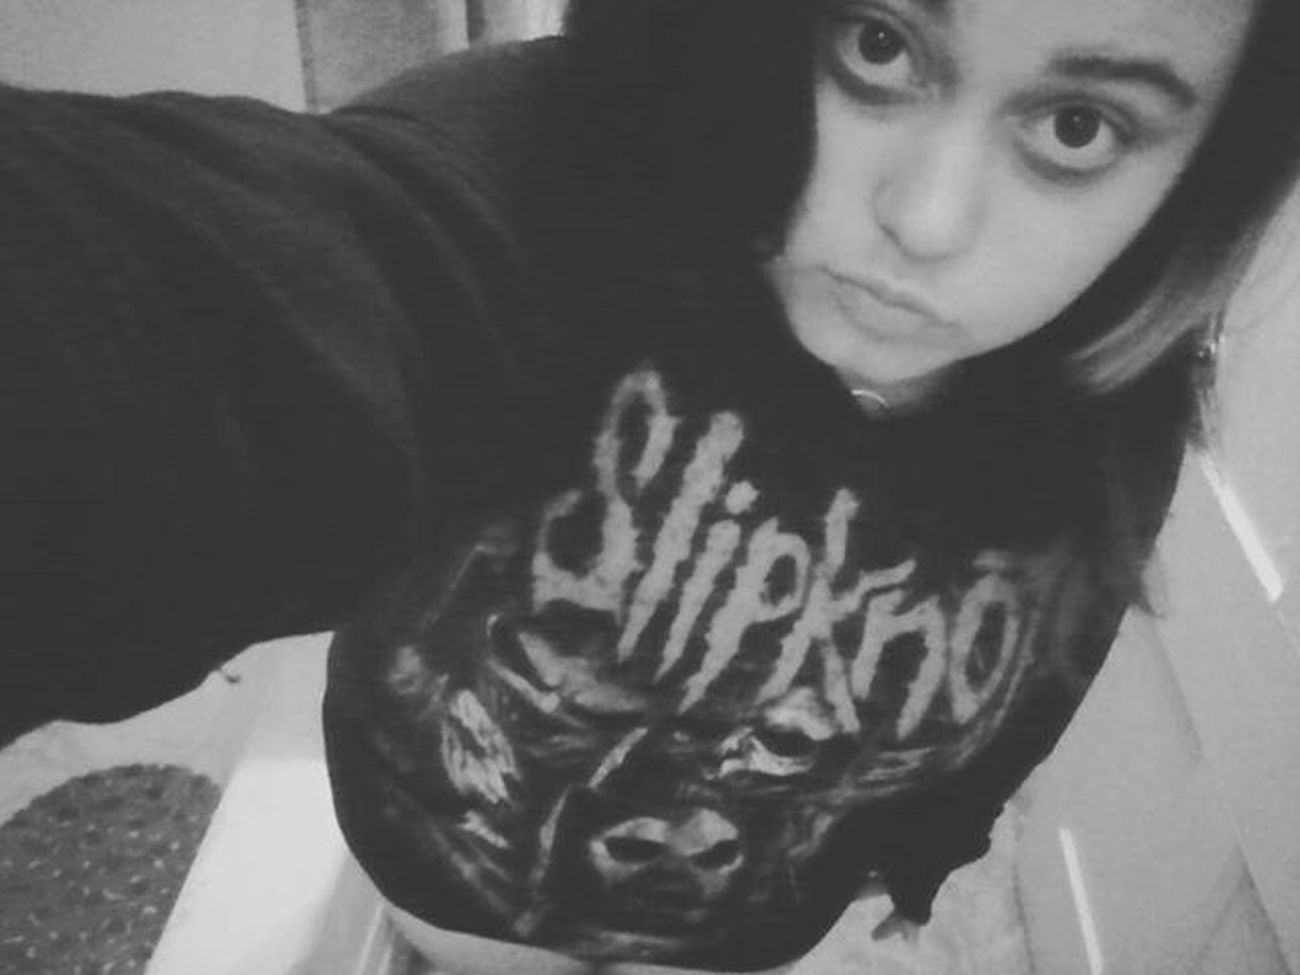 I Wouldn't Hold My Breathe If I Was You! I'll Forget But I'll Never Forgive You! Don't You Know? Don't You Know? True Friends Stab You In The Front! Goodmorning Selfie Legs Yogashorties Slipknothoodie Tiredeyes Bathroomselfie Bmth Bringmethehorizon Truefriends